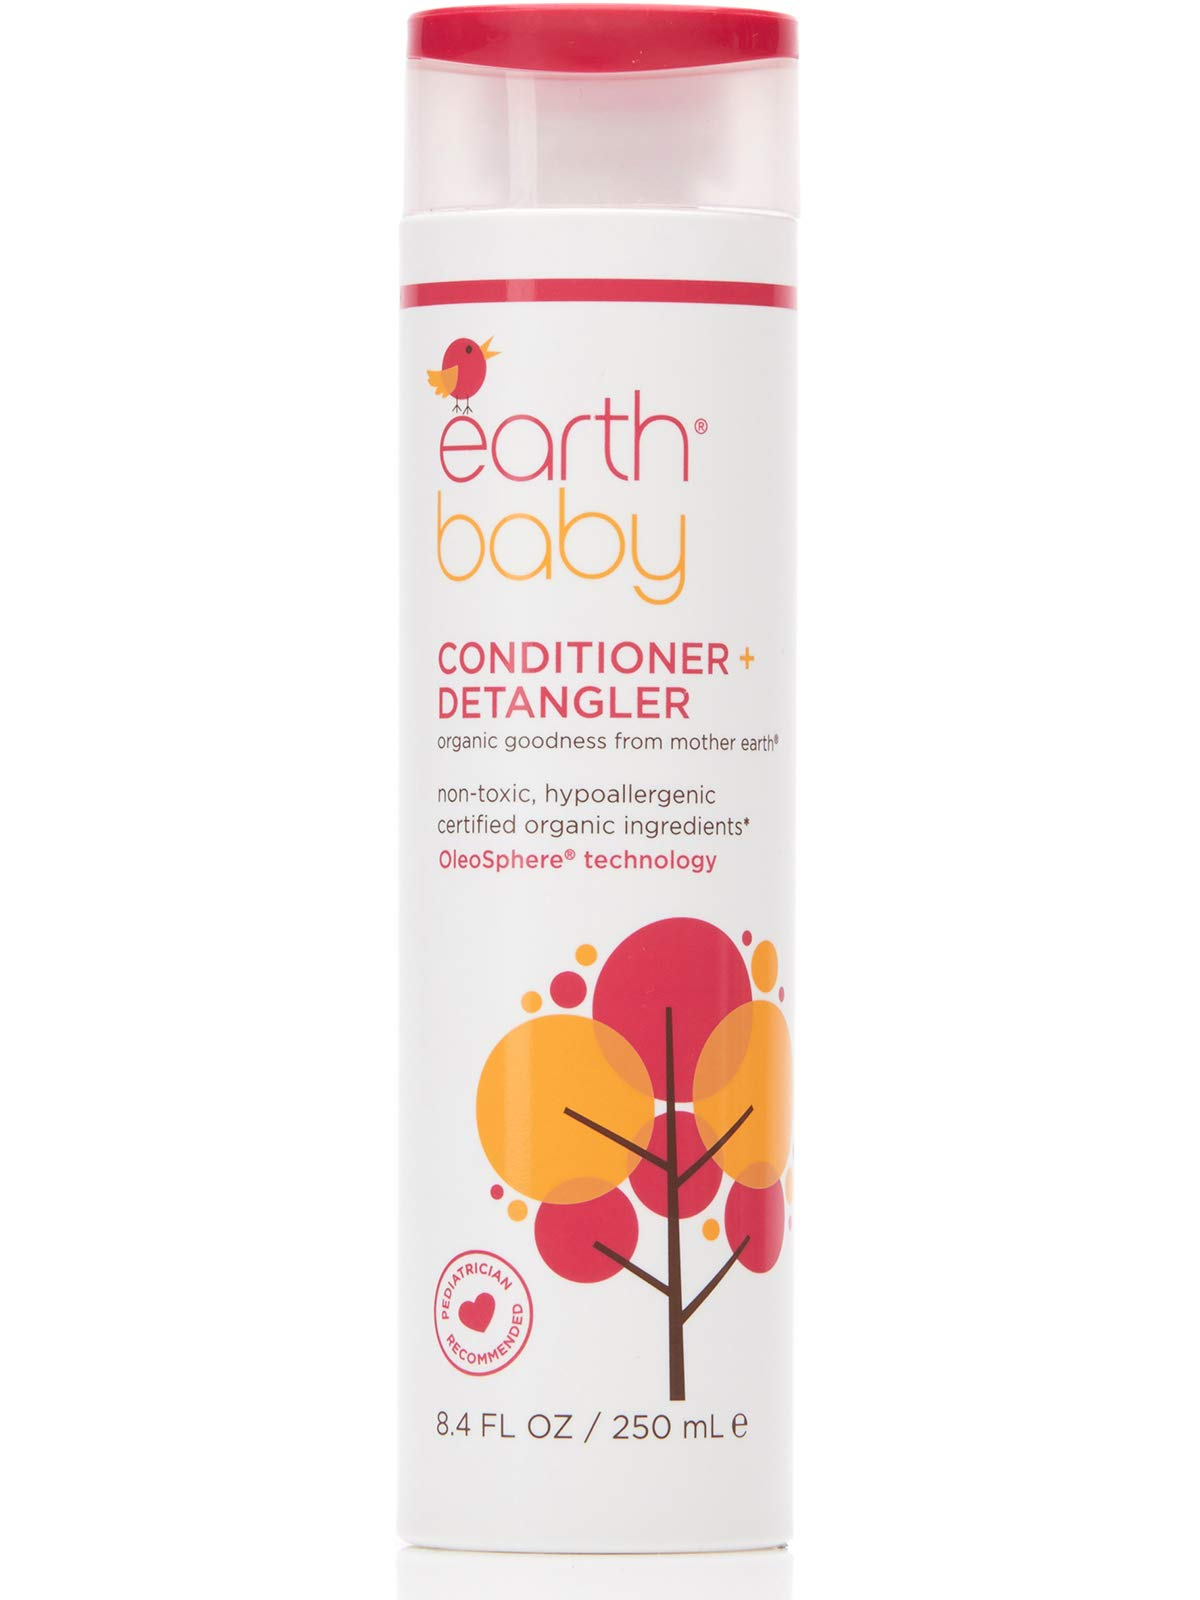 Earth Baby Conditioner + Detangler by Earth Baby